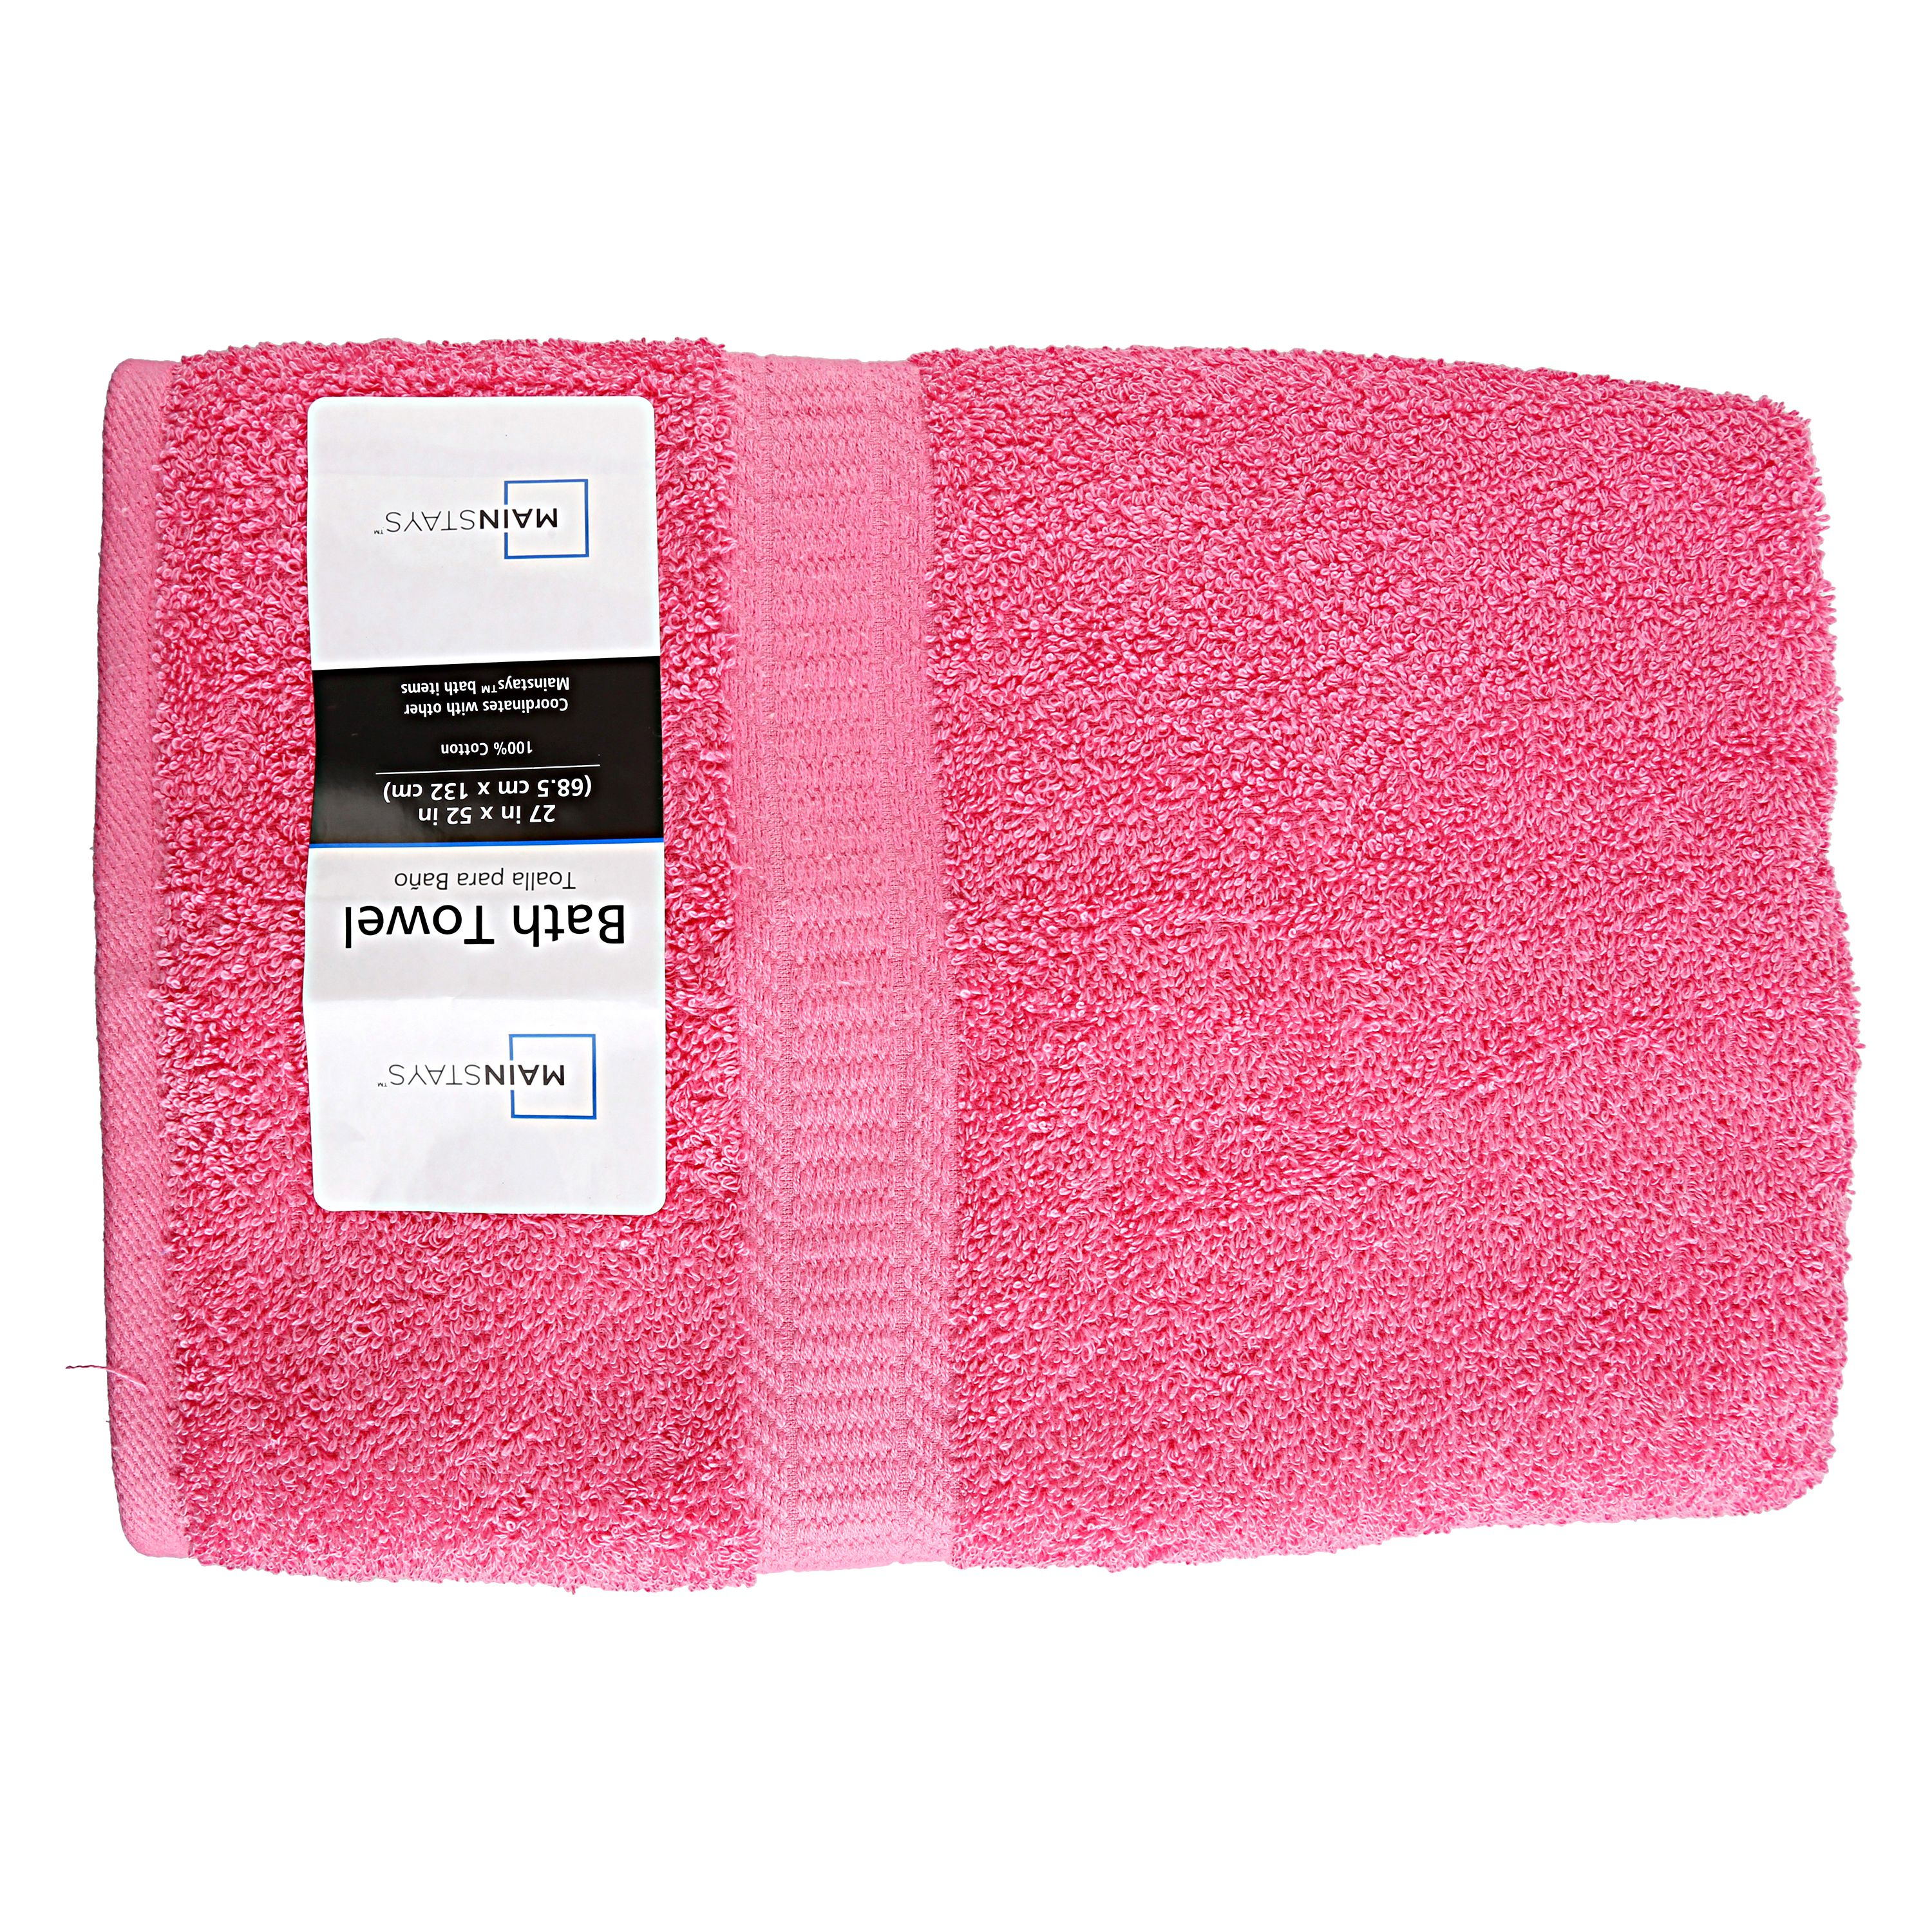 Mainstays Bright Pink Basic Bath Towel, 27 x 52 Inches by